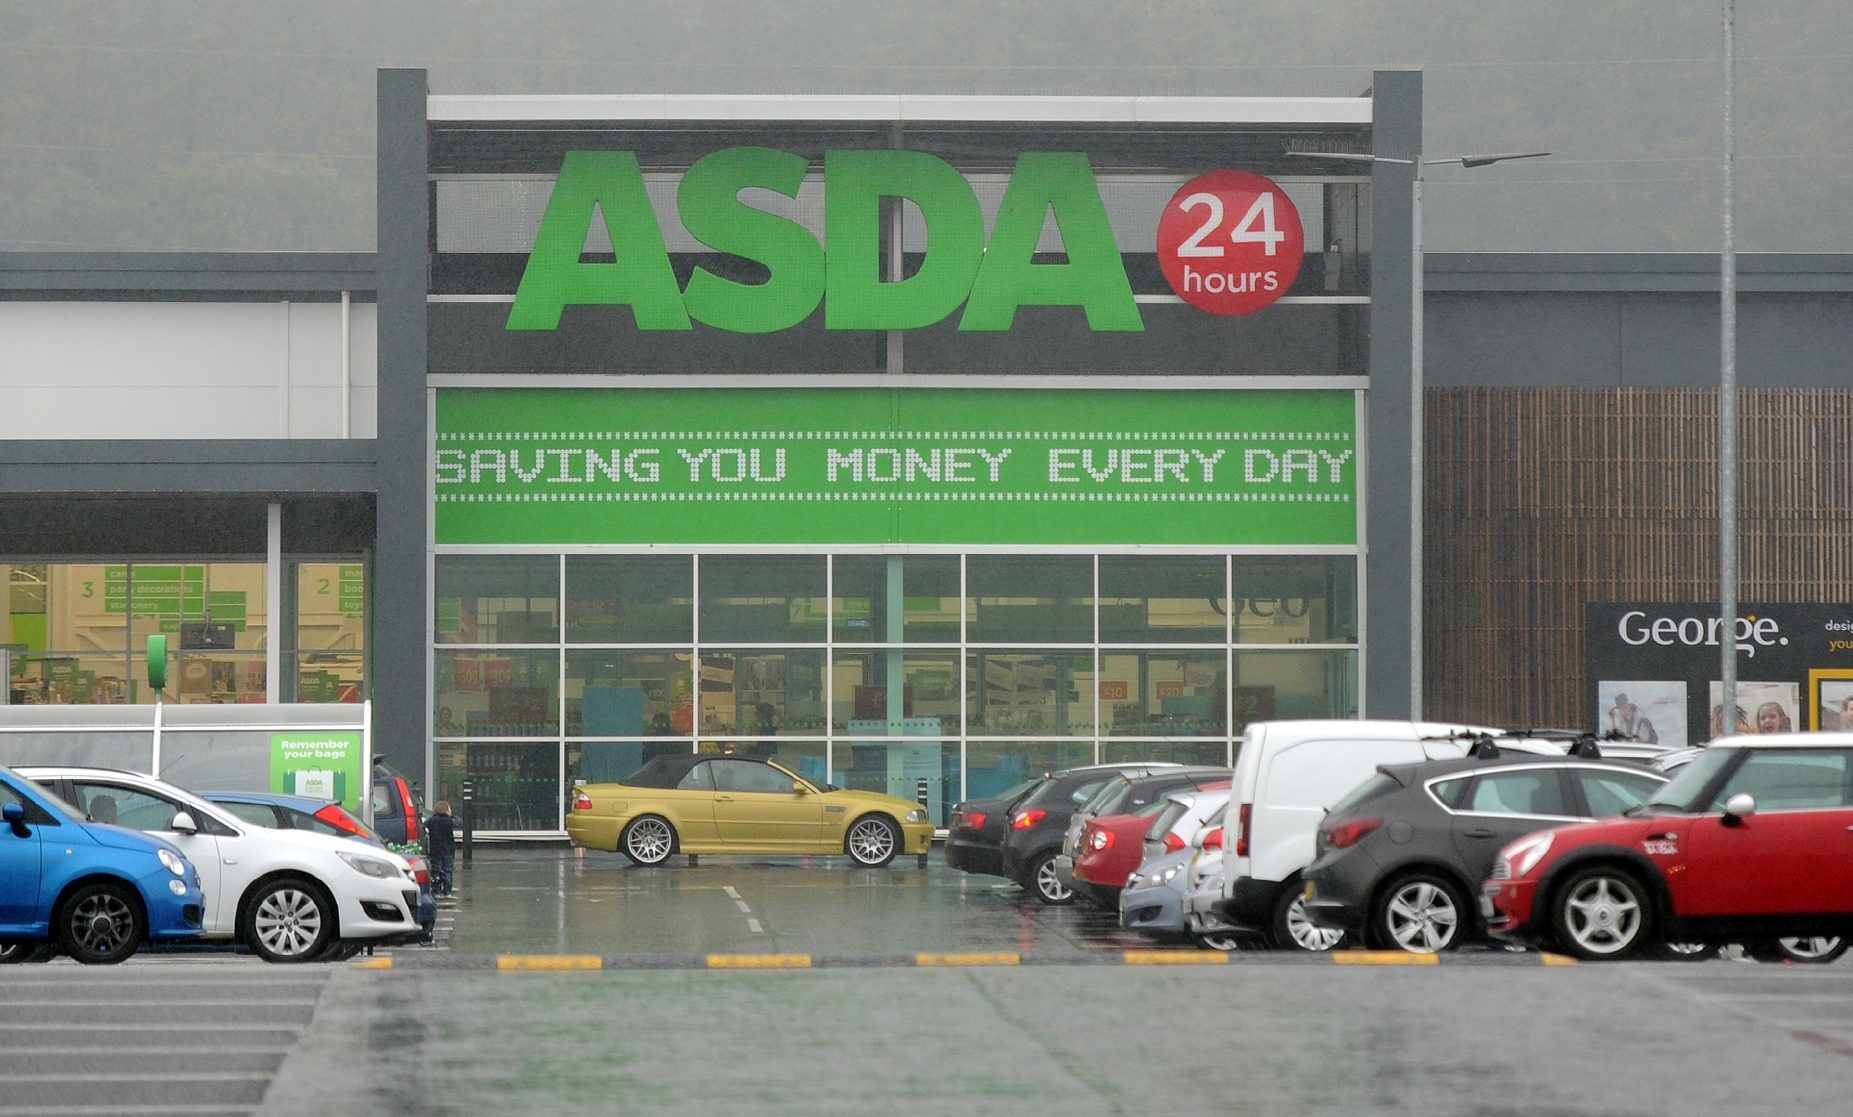 Asda store, Kingsway West, Dundee.